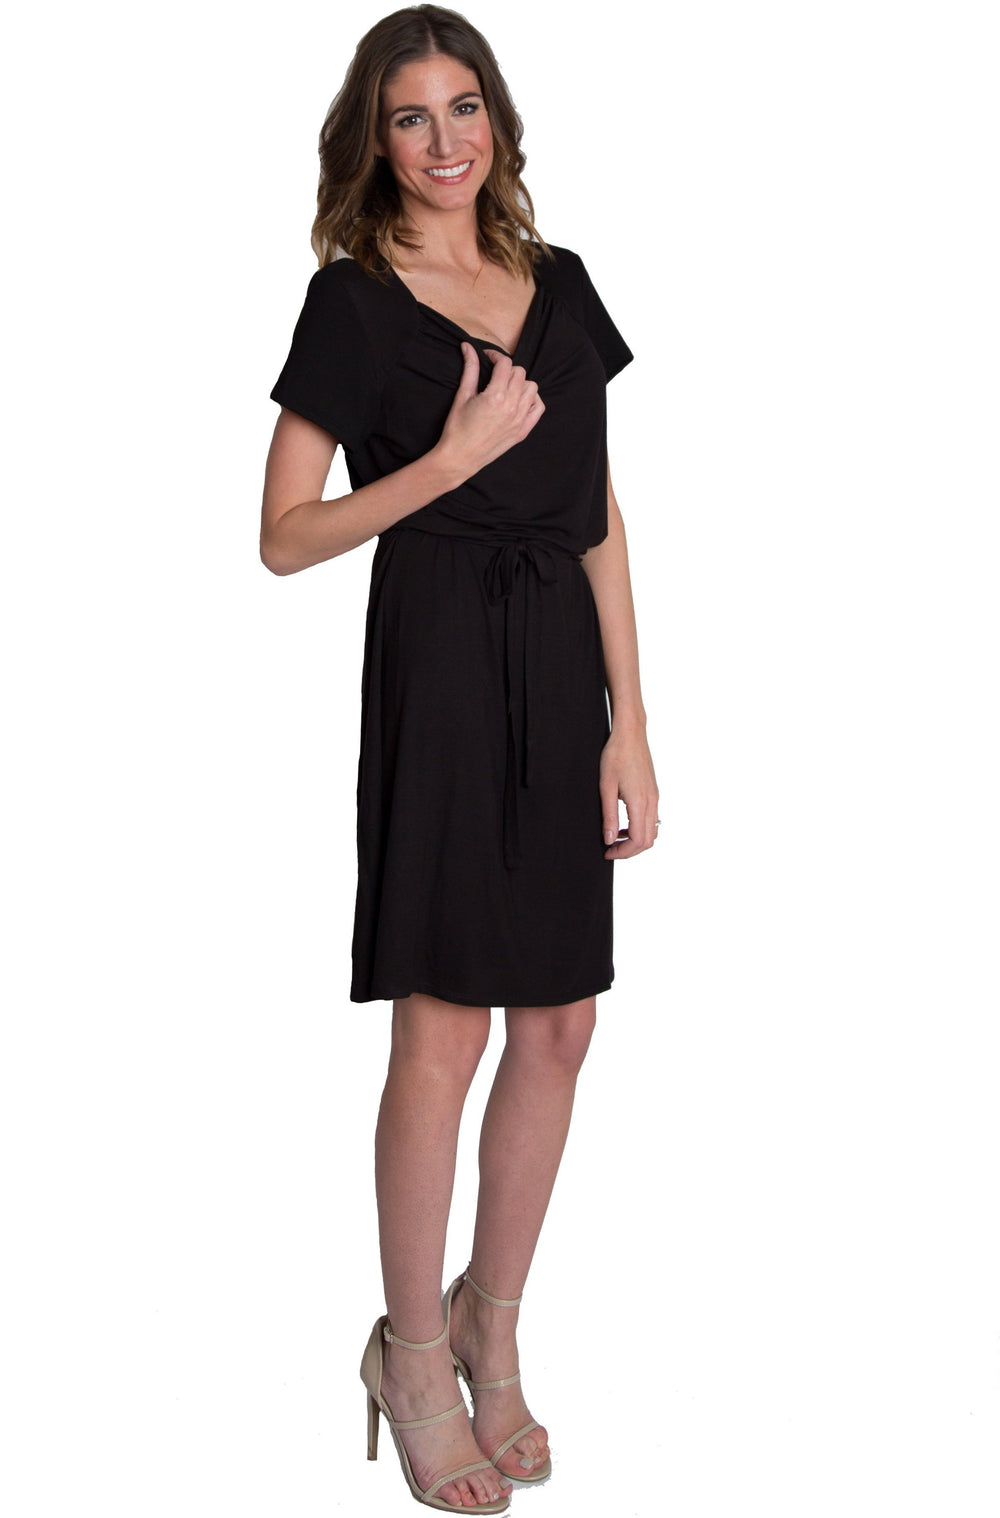 Chic Cowl Nursing Dress